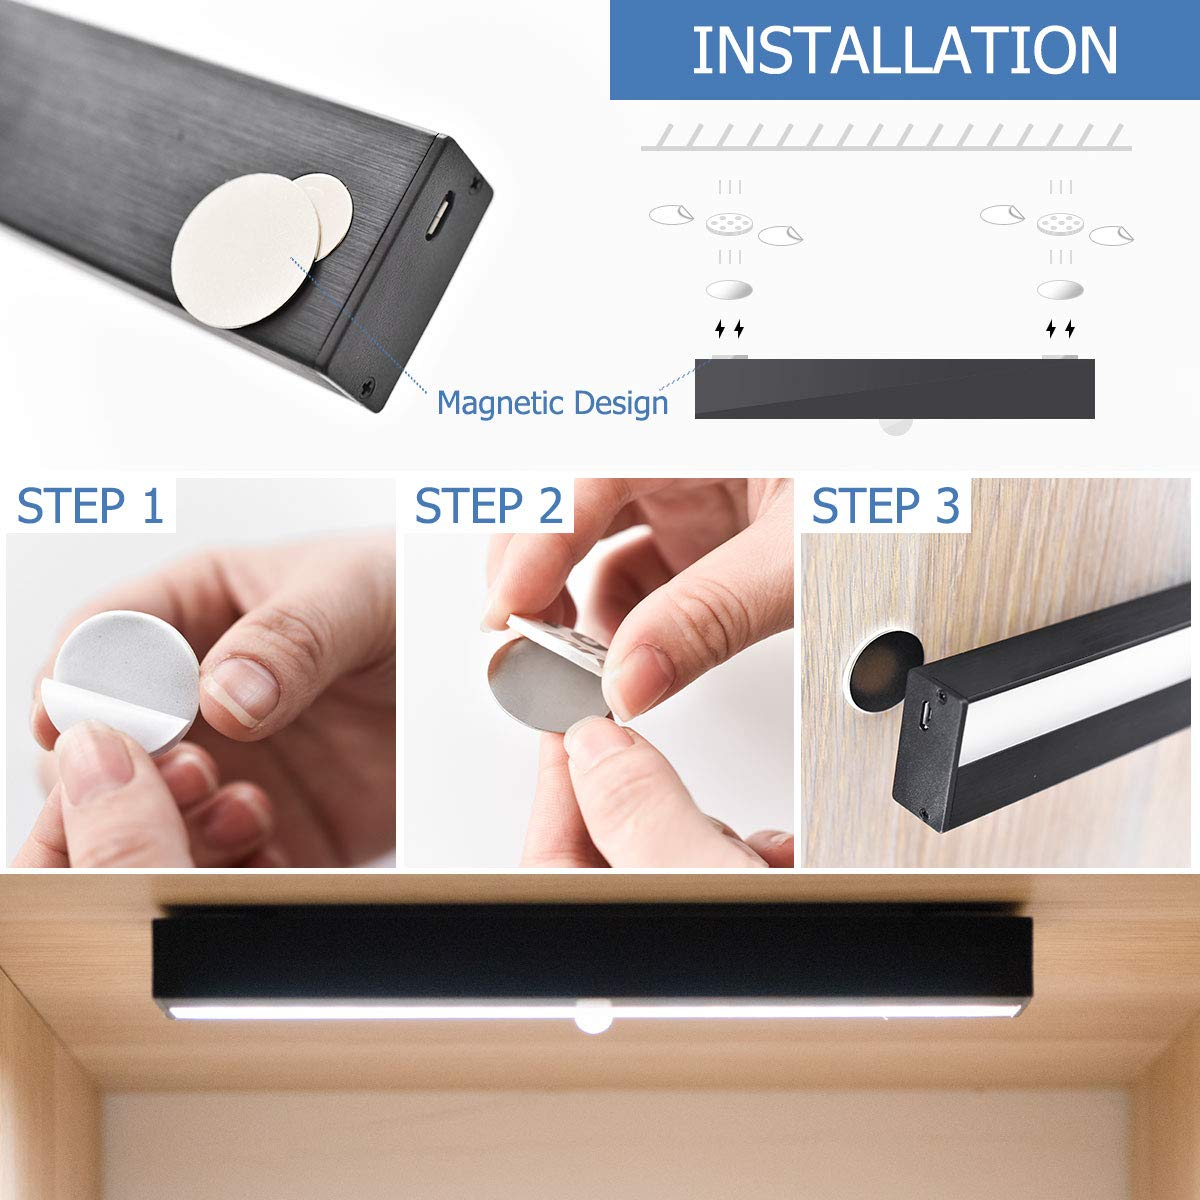 Stairs for Closet Bulit-in Rechargable Battery Hallway Cabinet Kitchen YouSheng Wireless Motion Sensor Light Magnetic Led Light Strip Super Bright Portable Cabinet Light with 18 LEDs